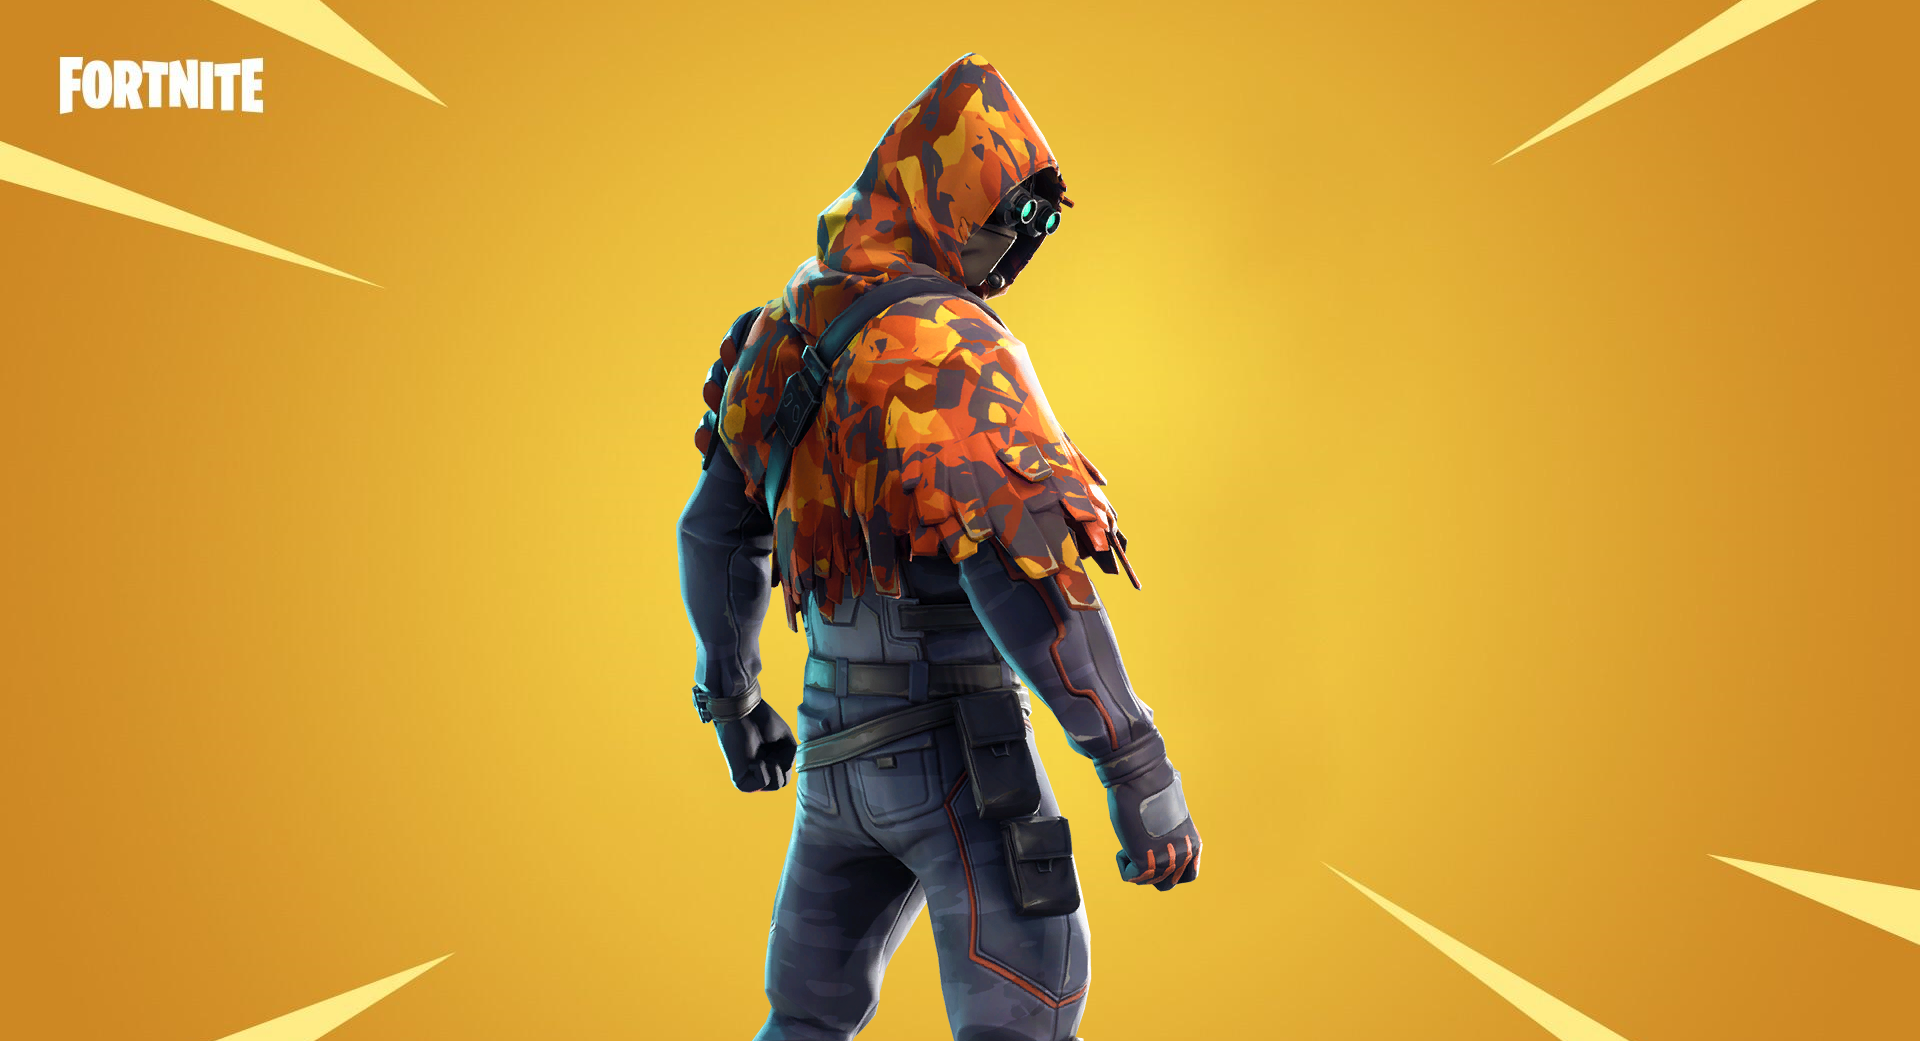 fortnite 6 31 leaks reveal new skins and cosmetics coming to the